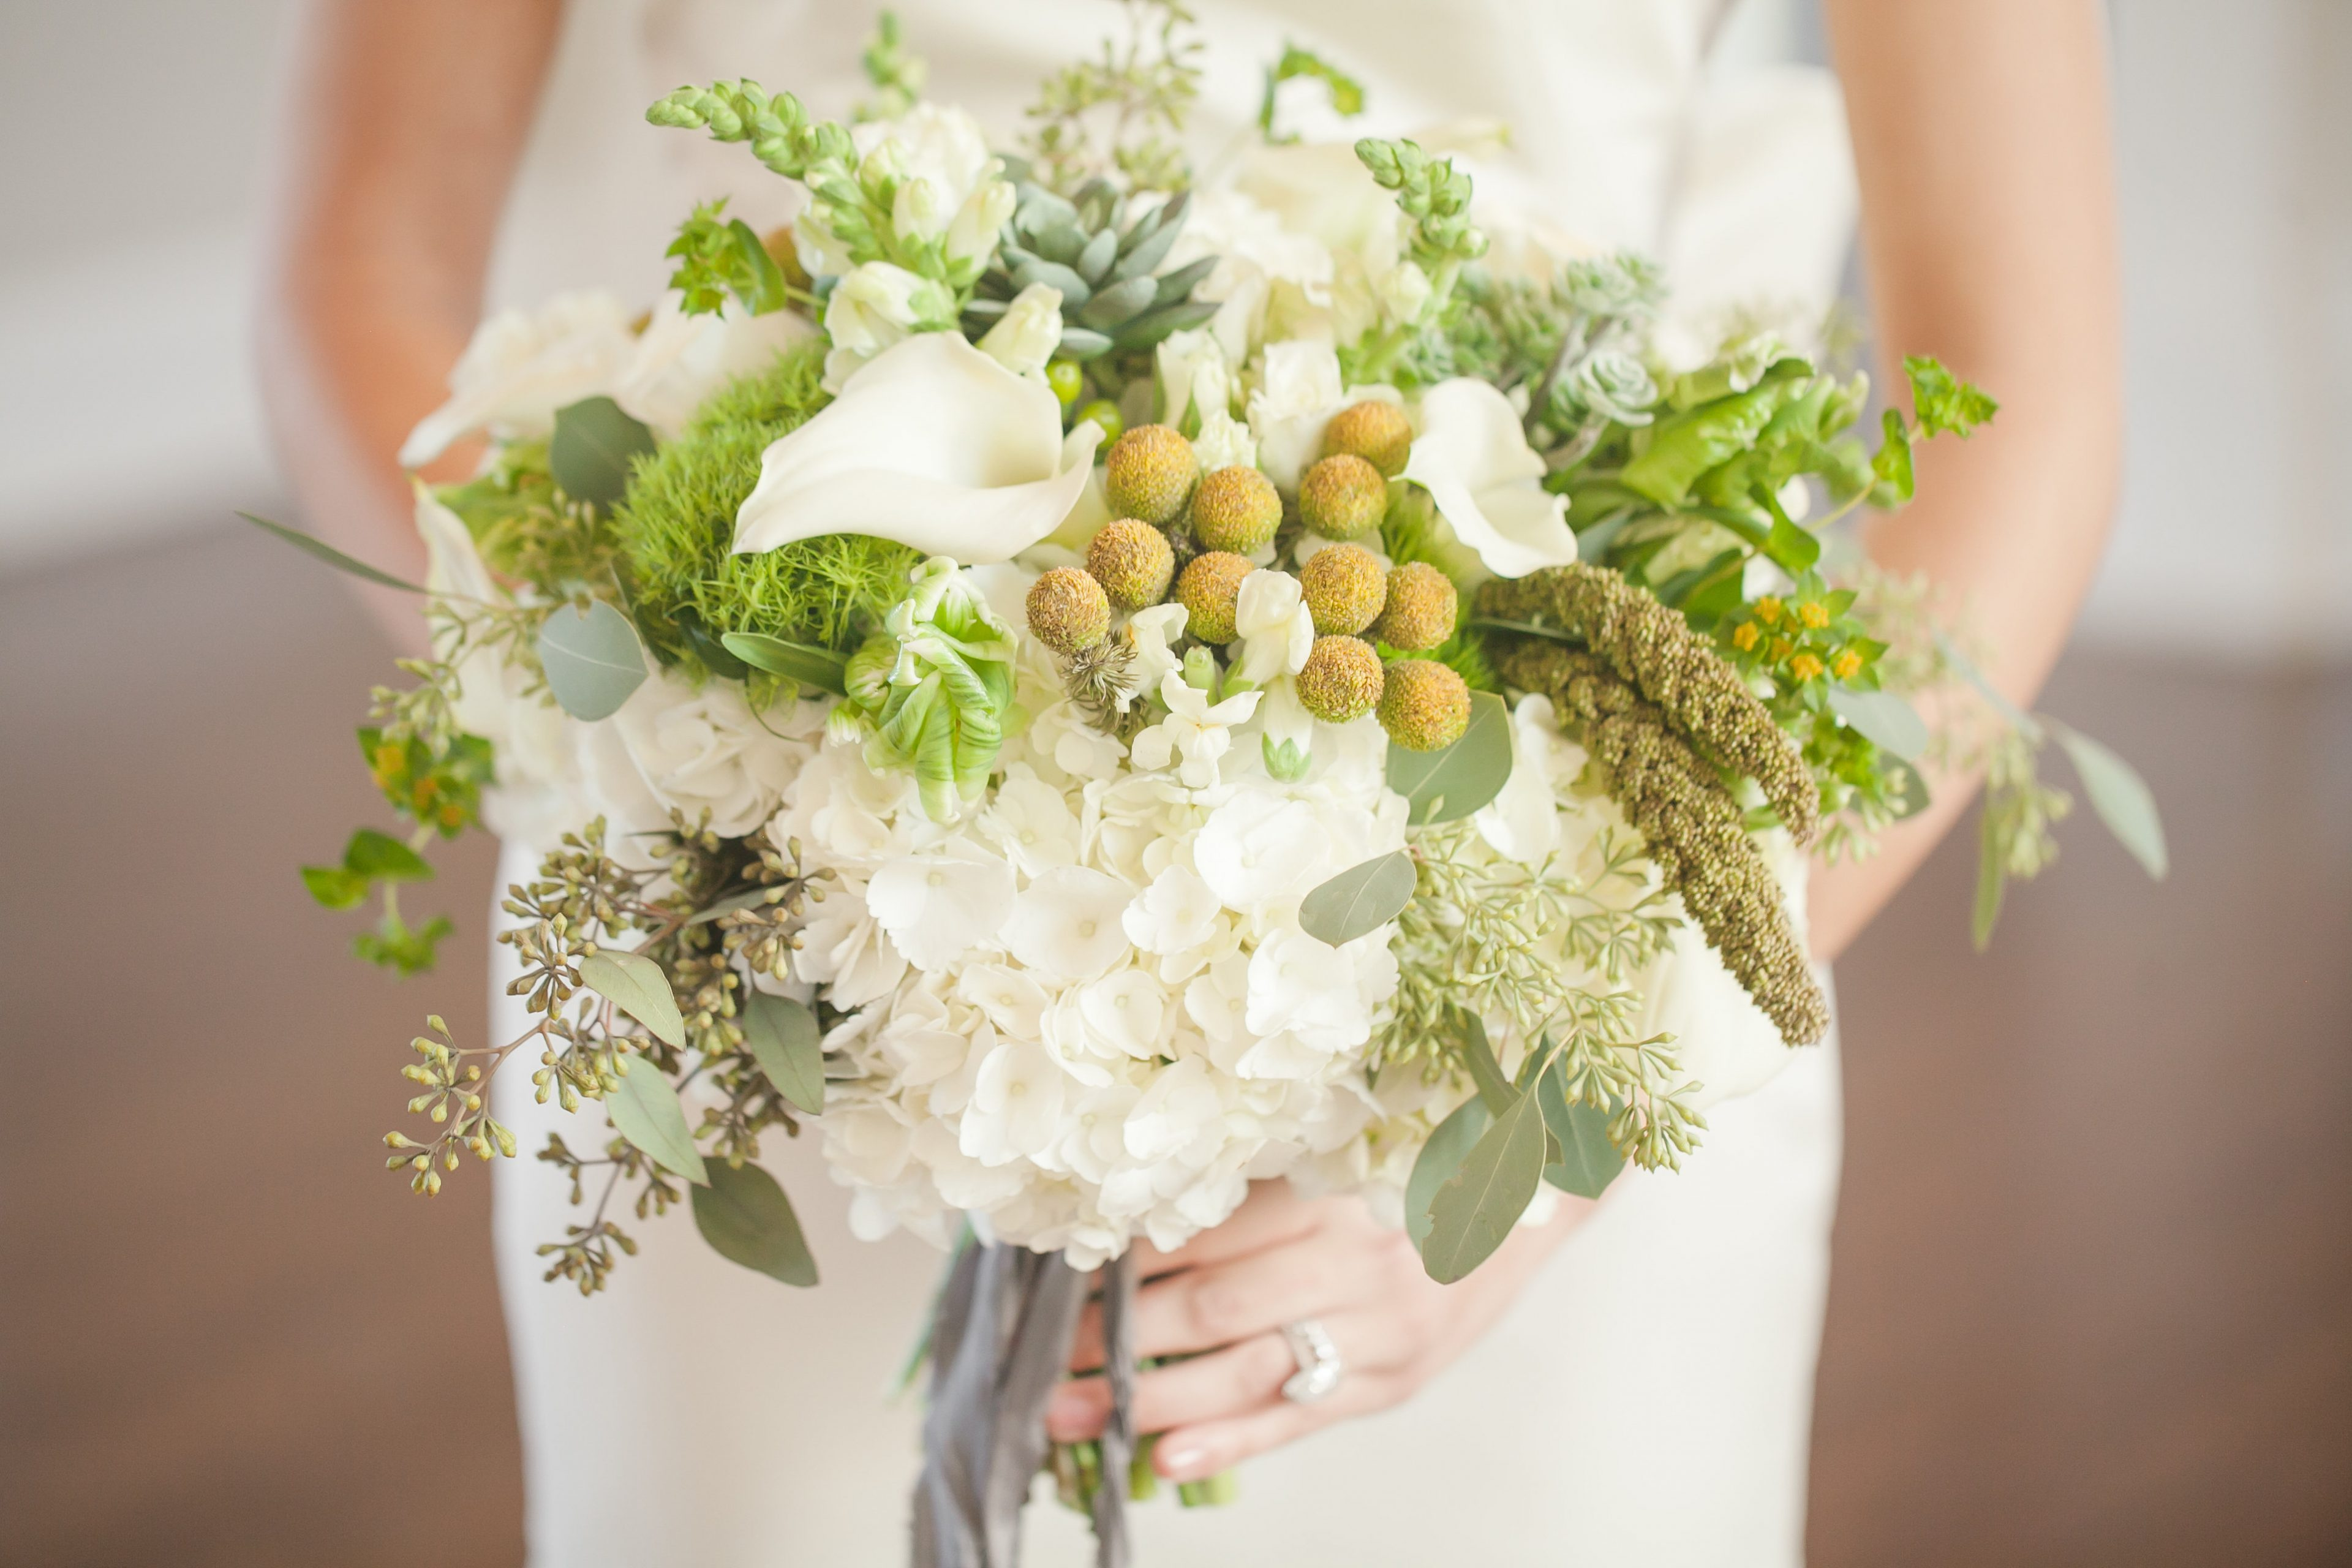 Amazing bridal bouquet with pops of green designed by Chelish Moore